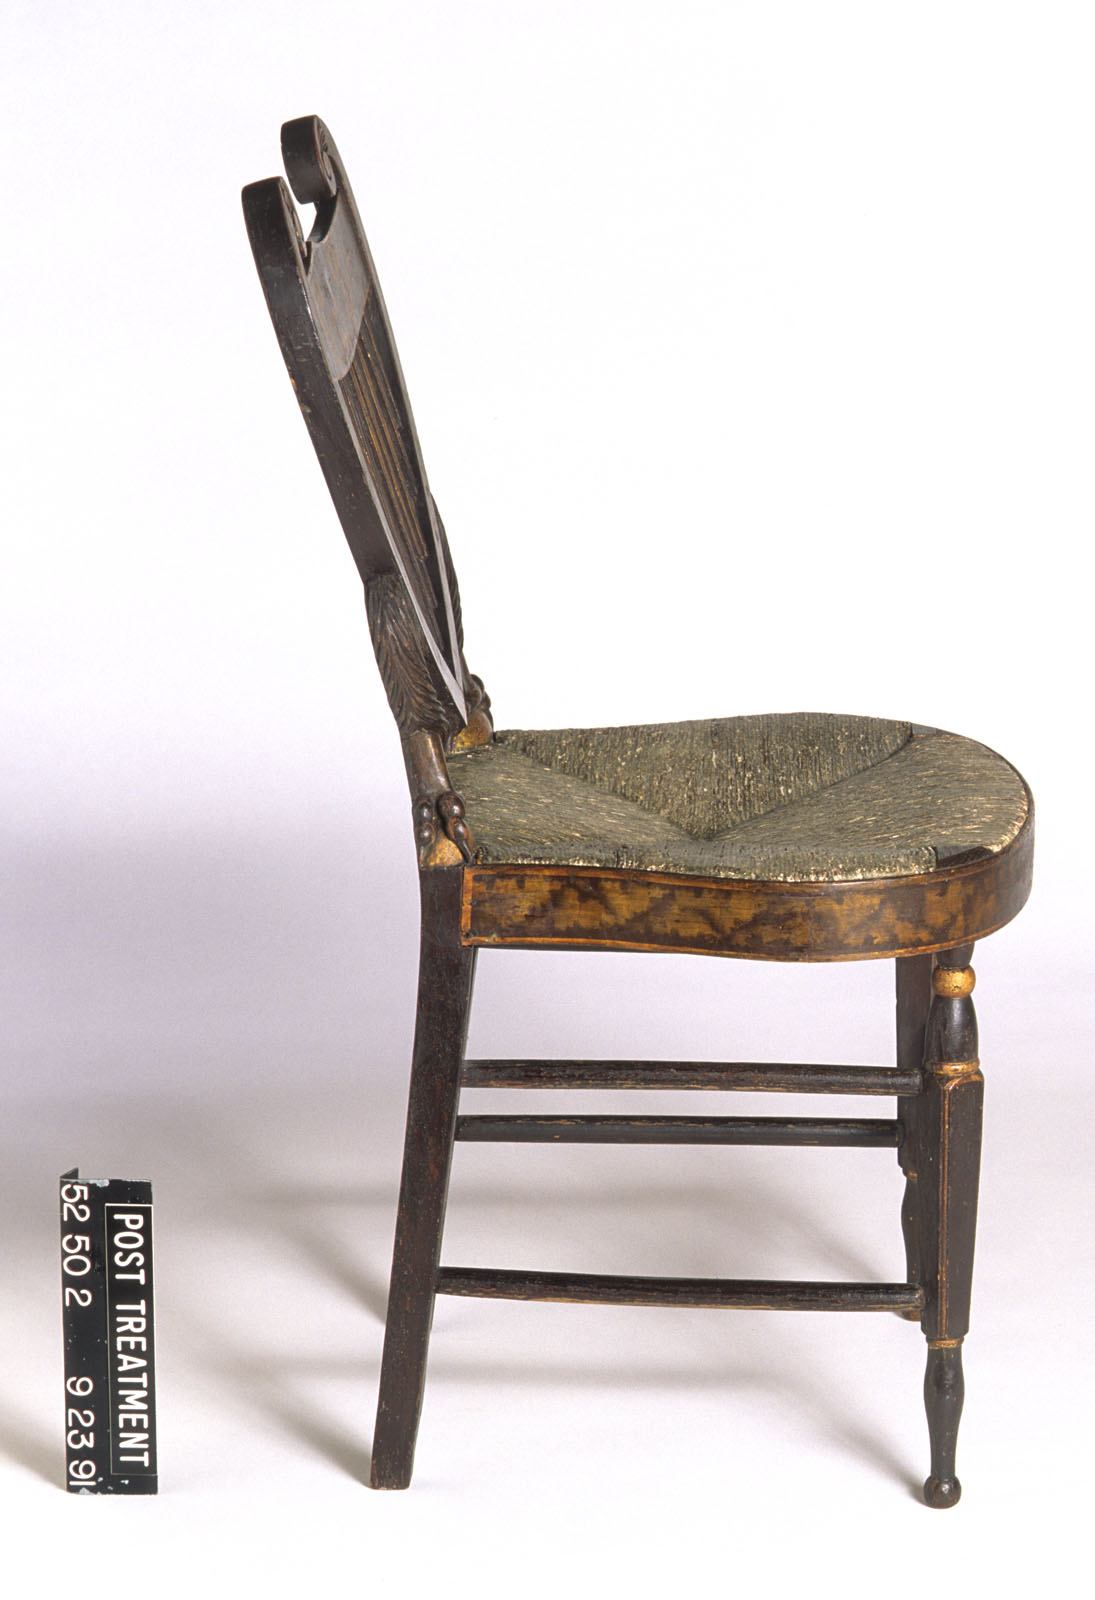 1952.0050.002 Chair, side view 2